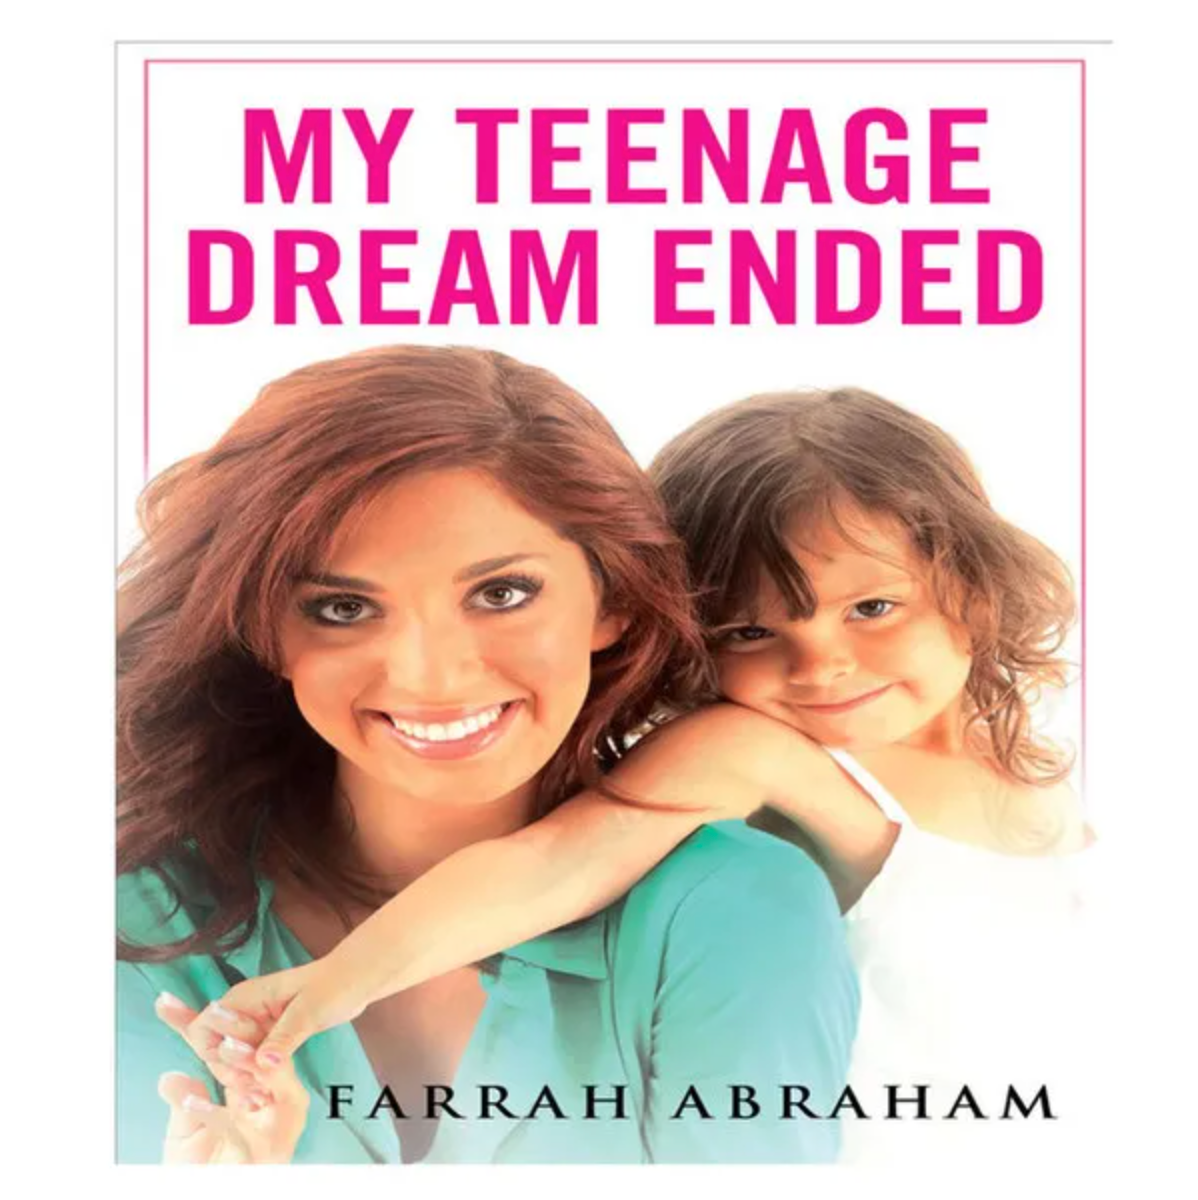 Farrah Abraham's 'My Teenage Dream Ended' album cover